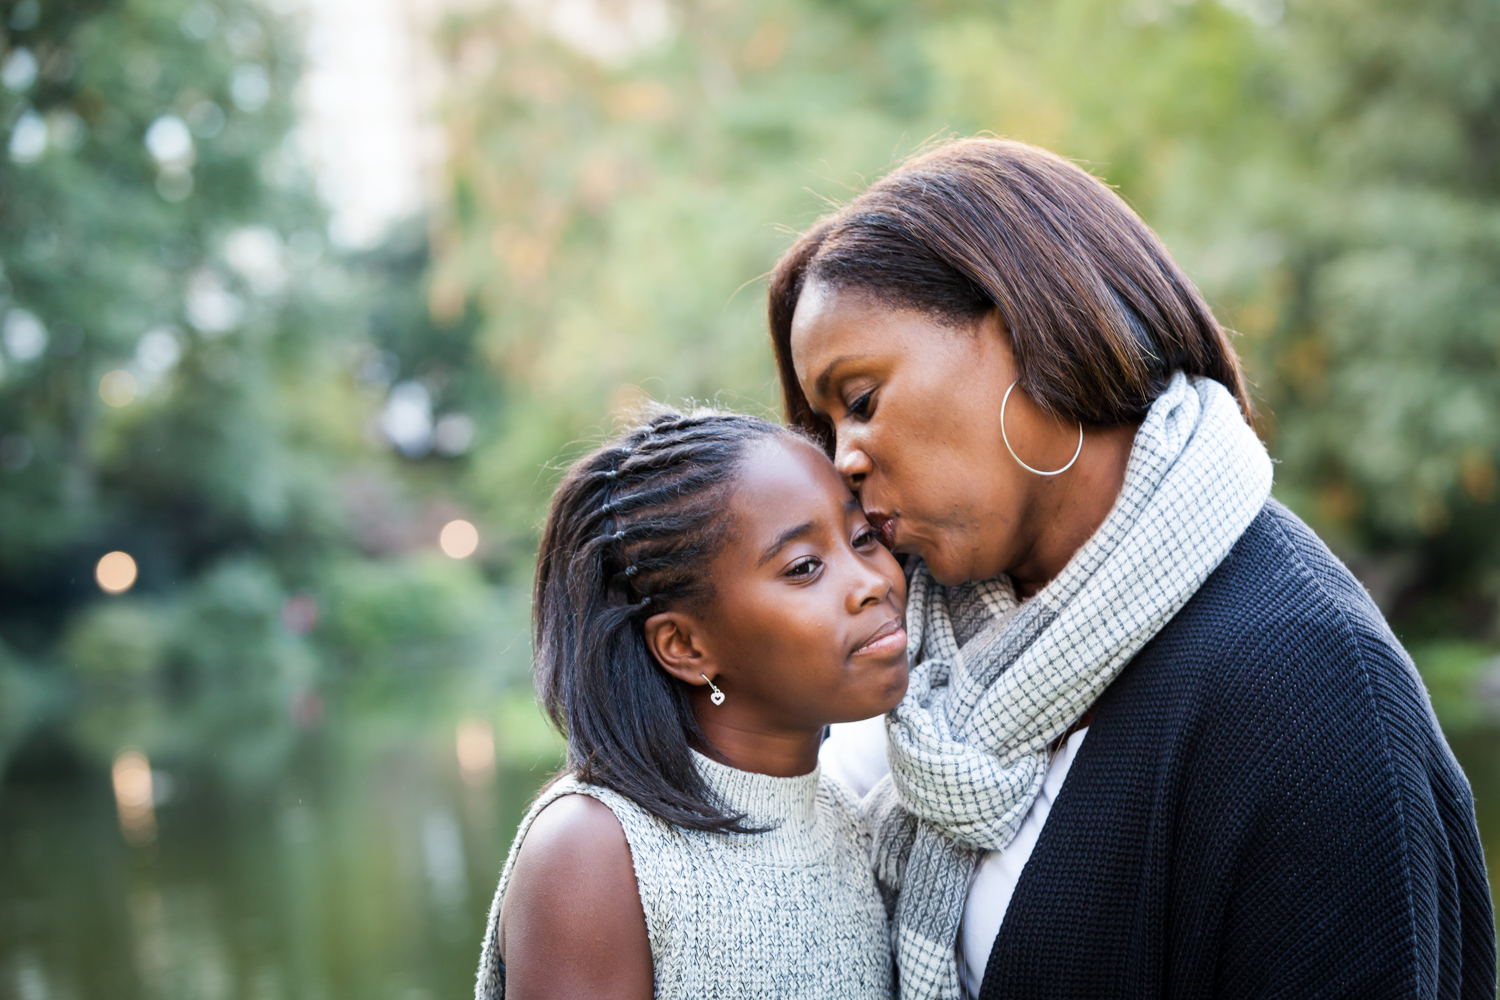 Central Park fall family portrait of mother kissing daughter's face